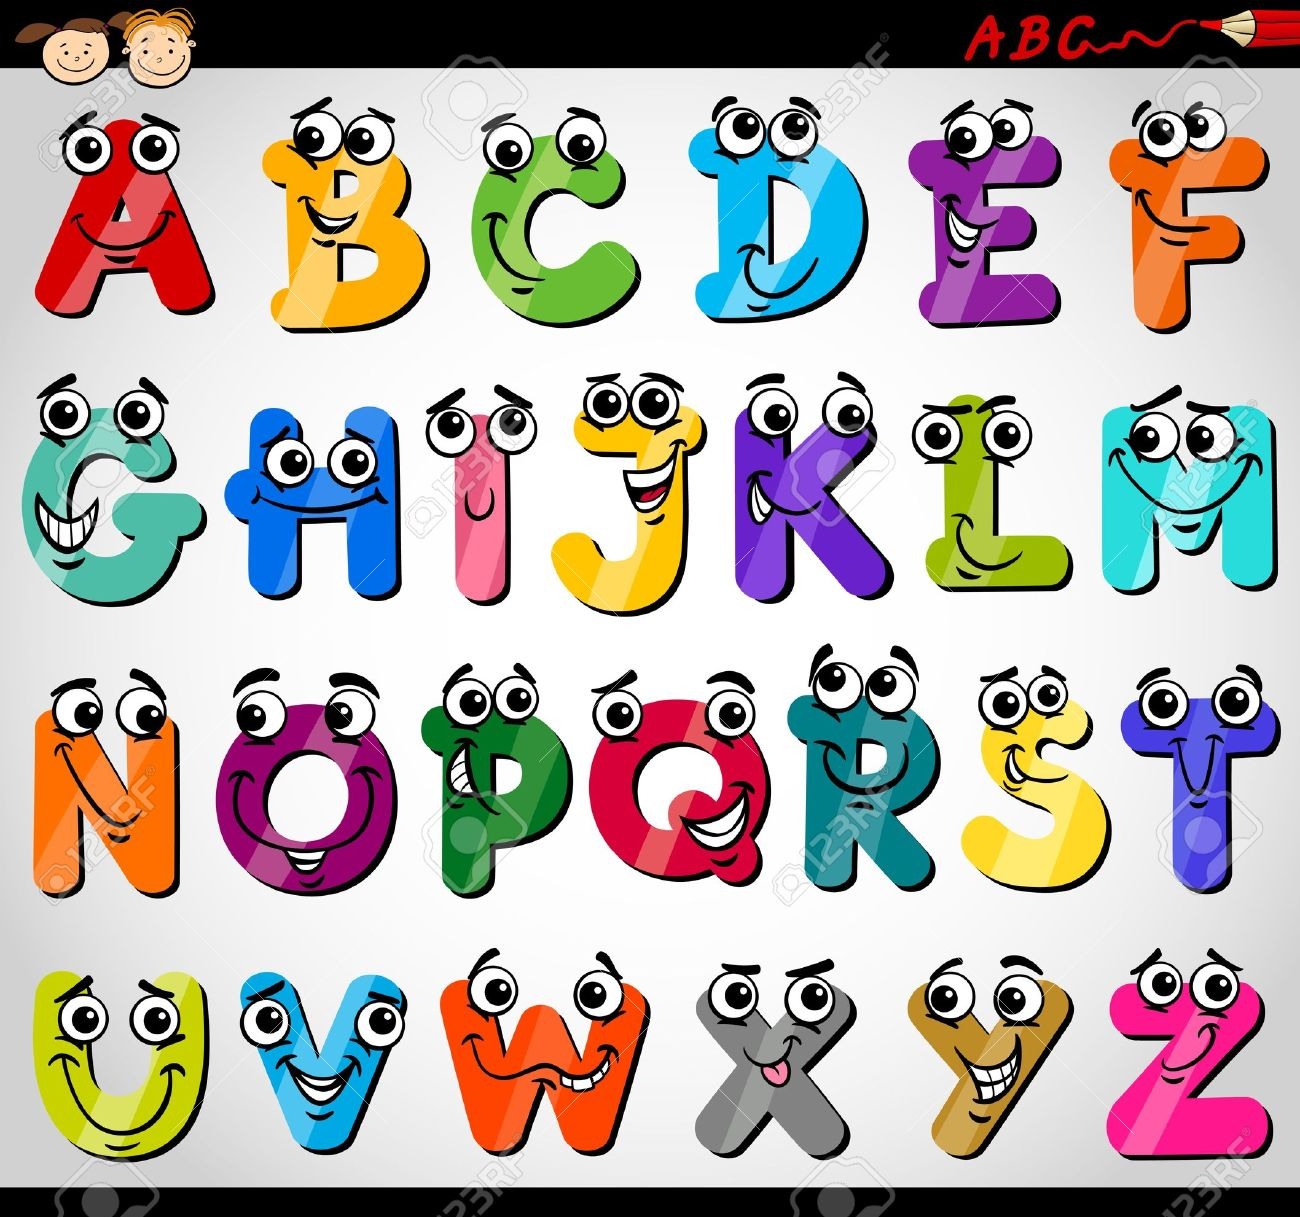 Cartoon Illustration Funny Capital Letters Alphabet For